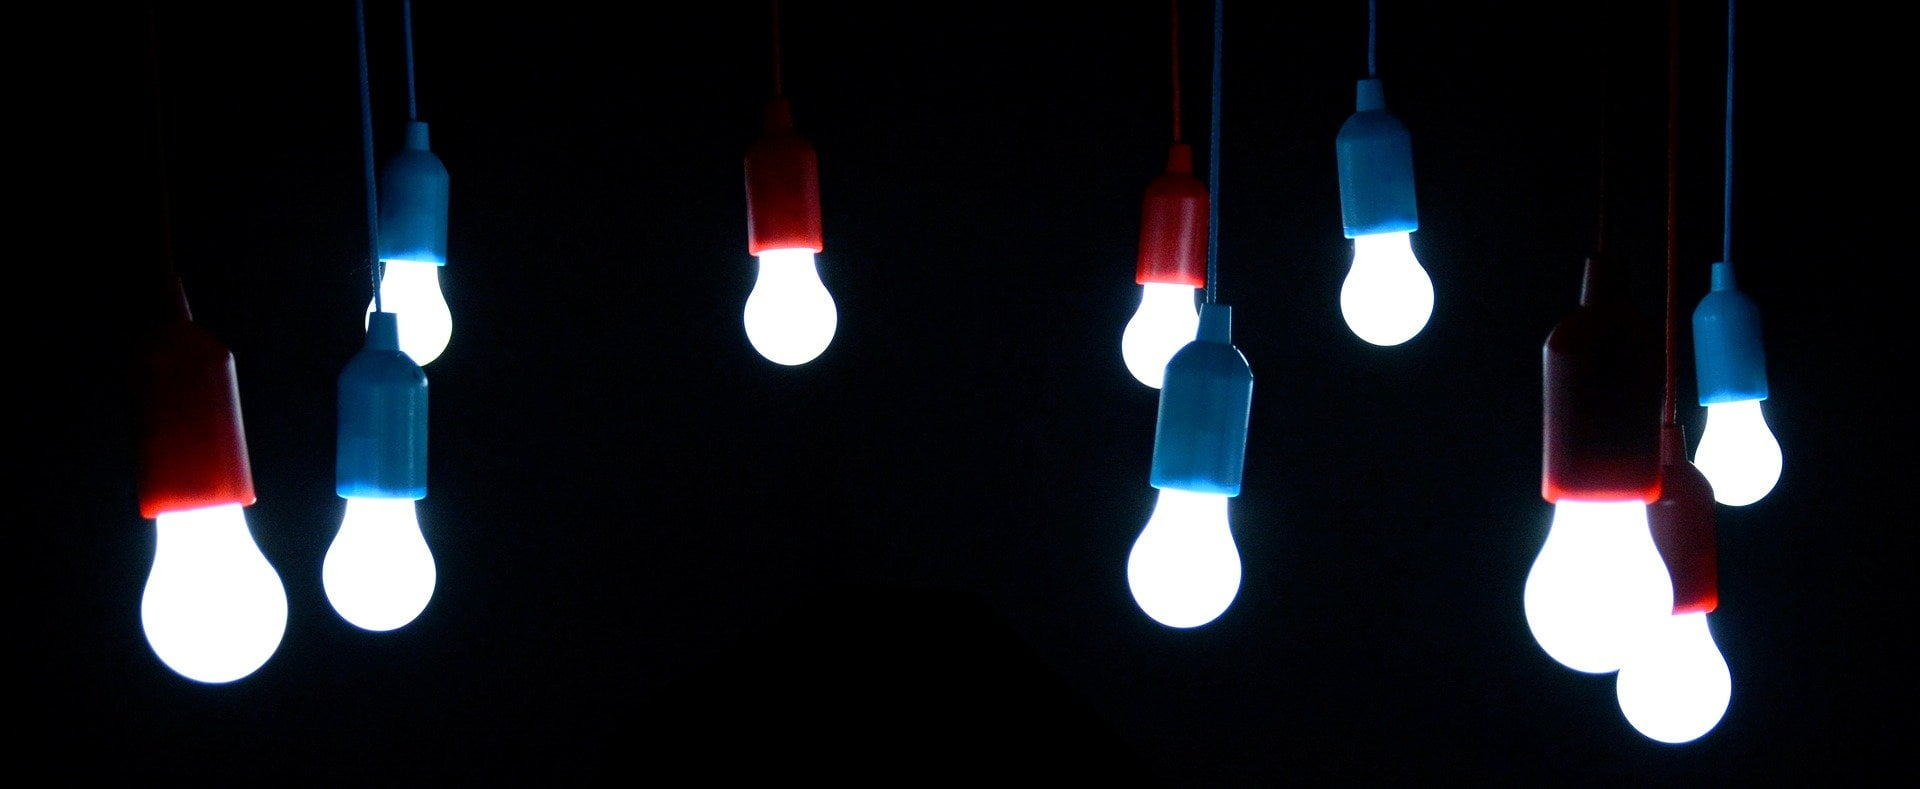 LED light bulbs will replace the ones included in the halogen lights ban